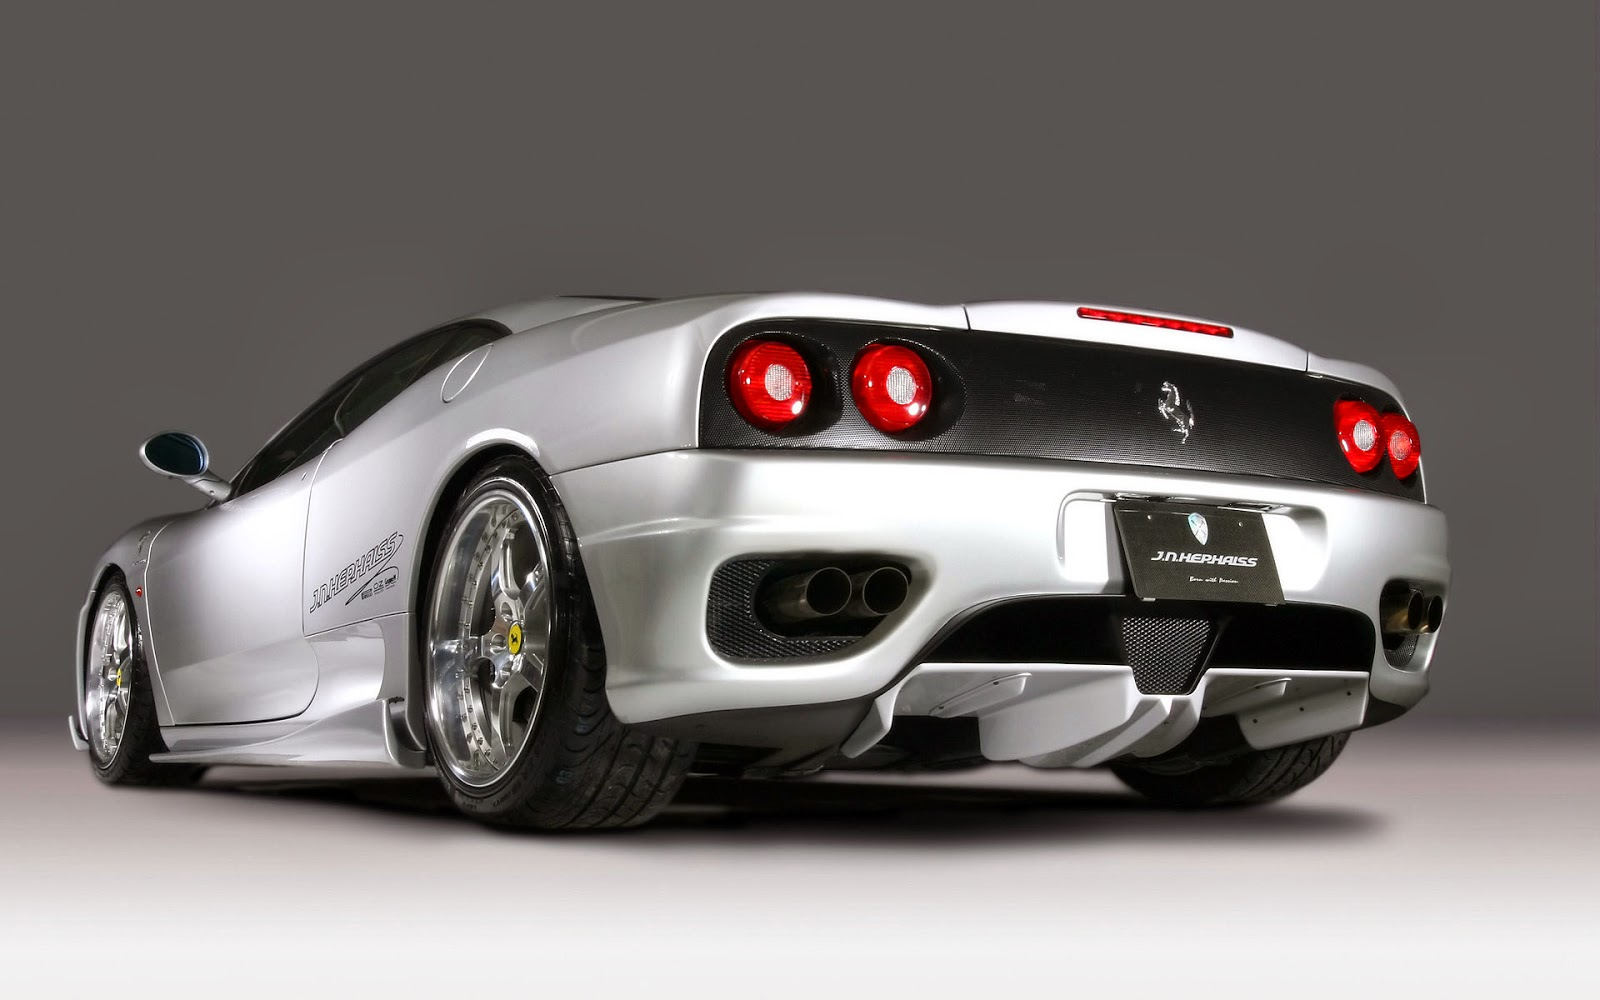 Ferrari Car Images Free Download Ferrari Car hd Pictures Free